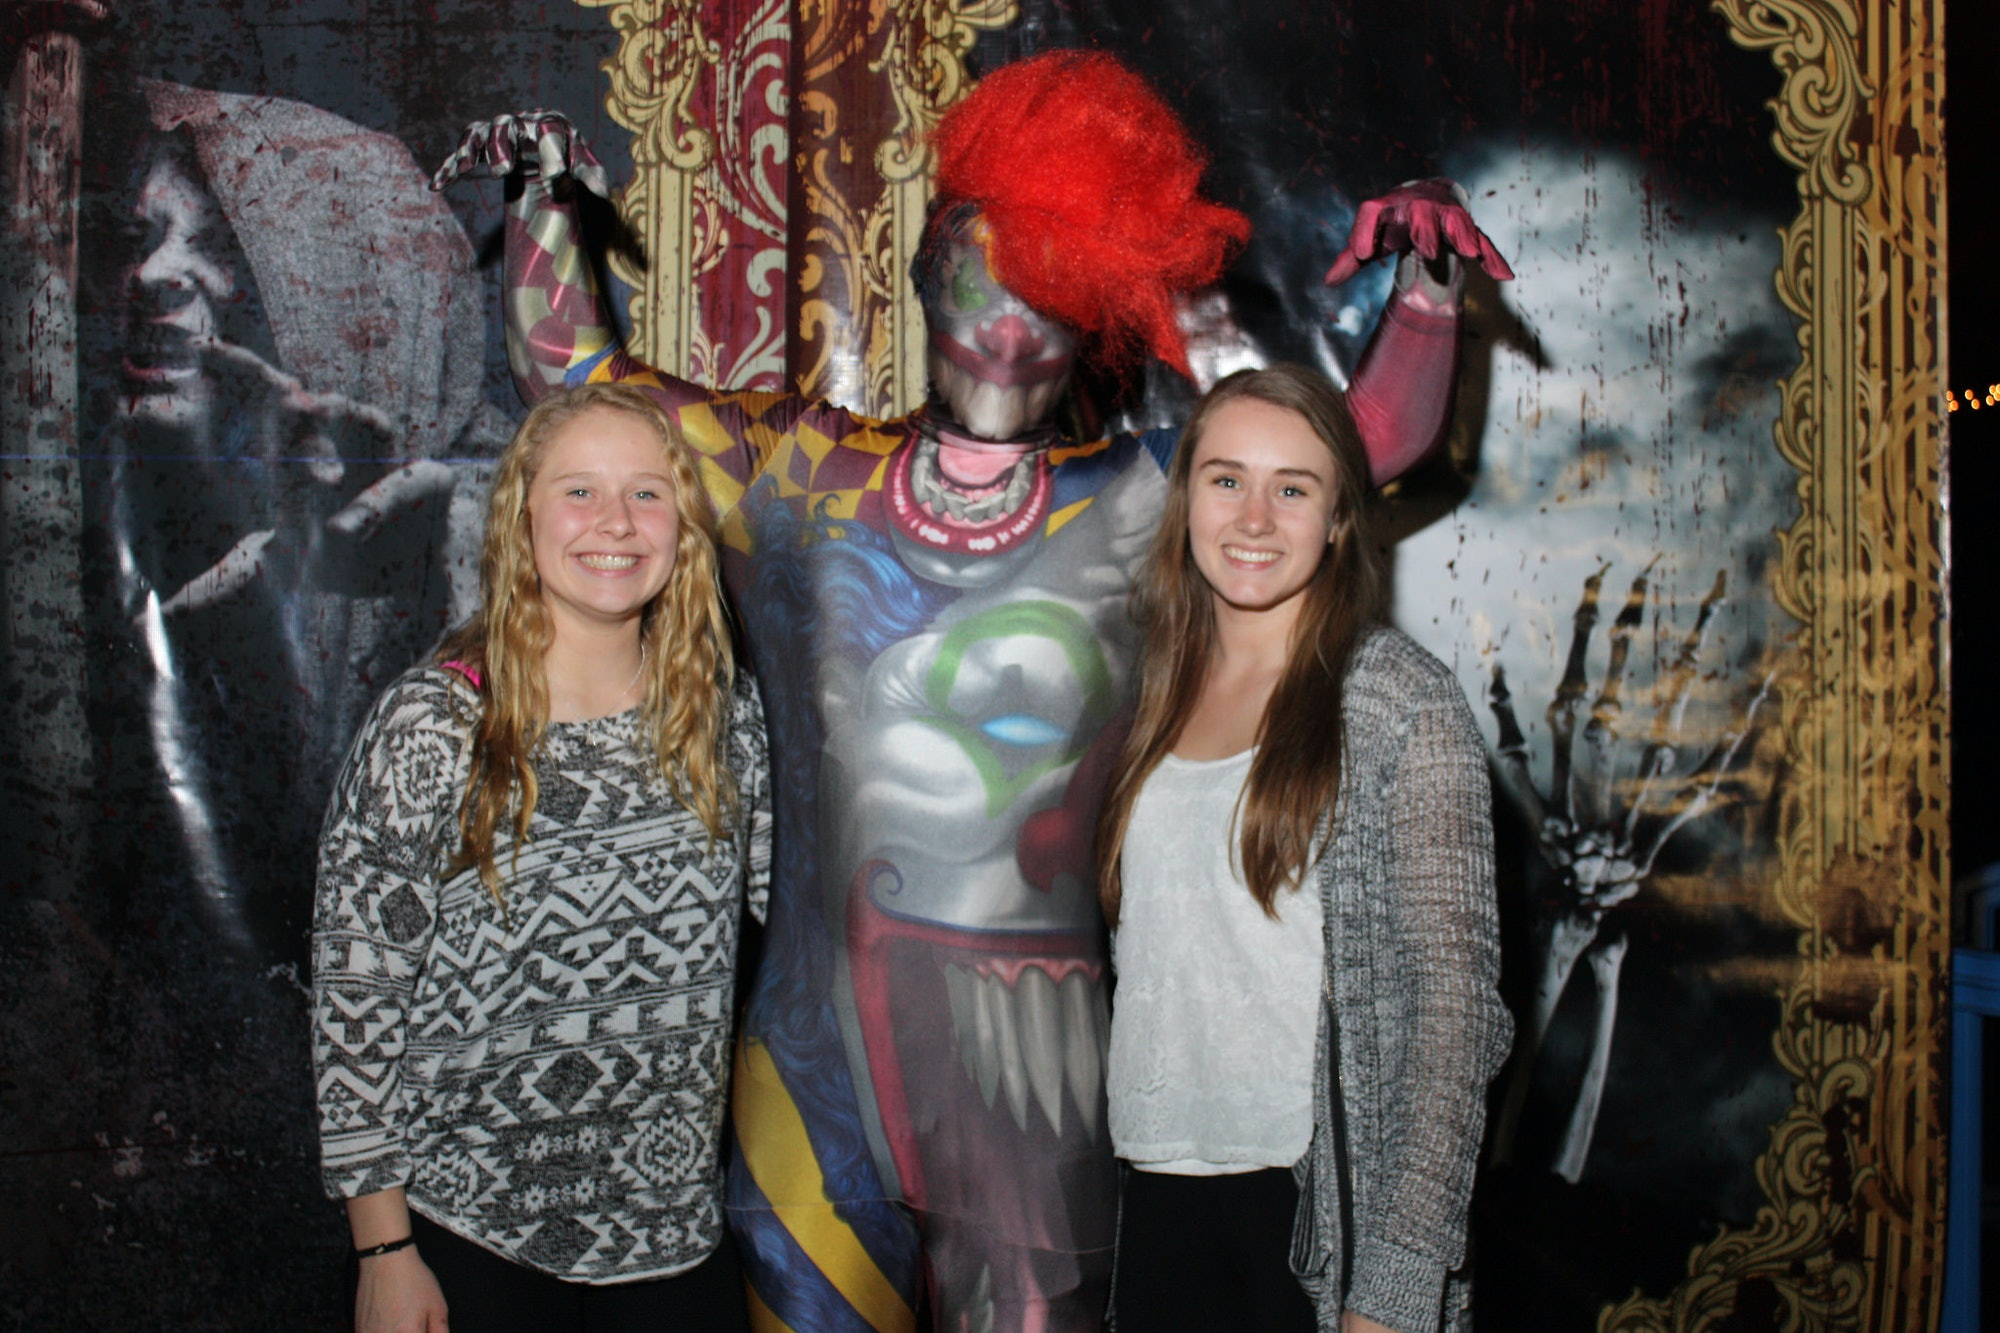 Friends take photo with actor at Walk In the Dark interactive horror-theater